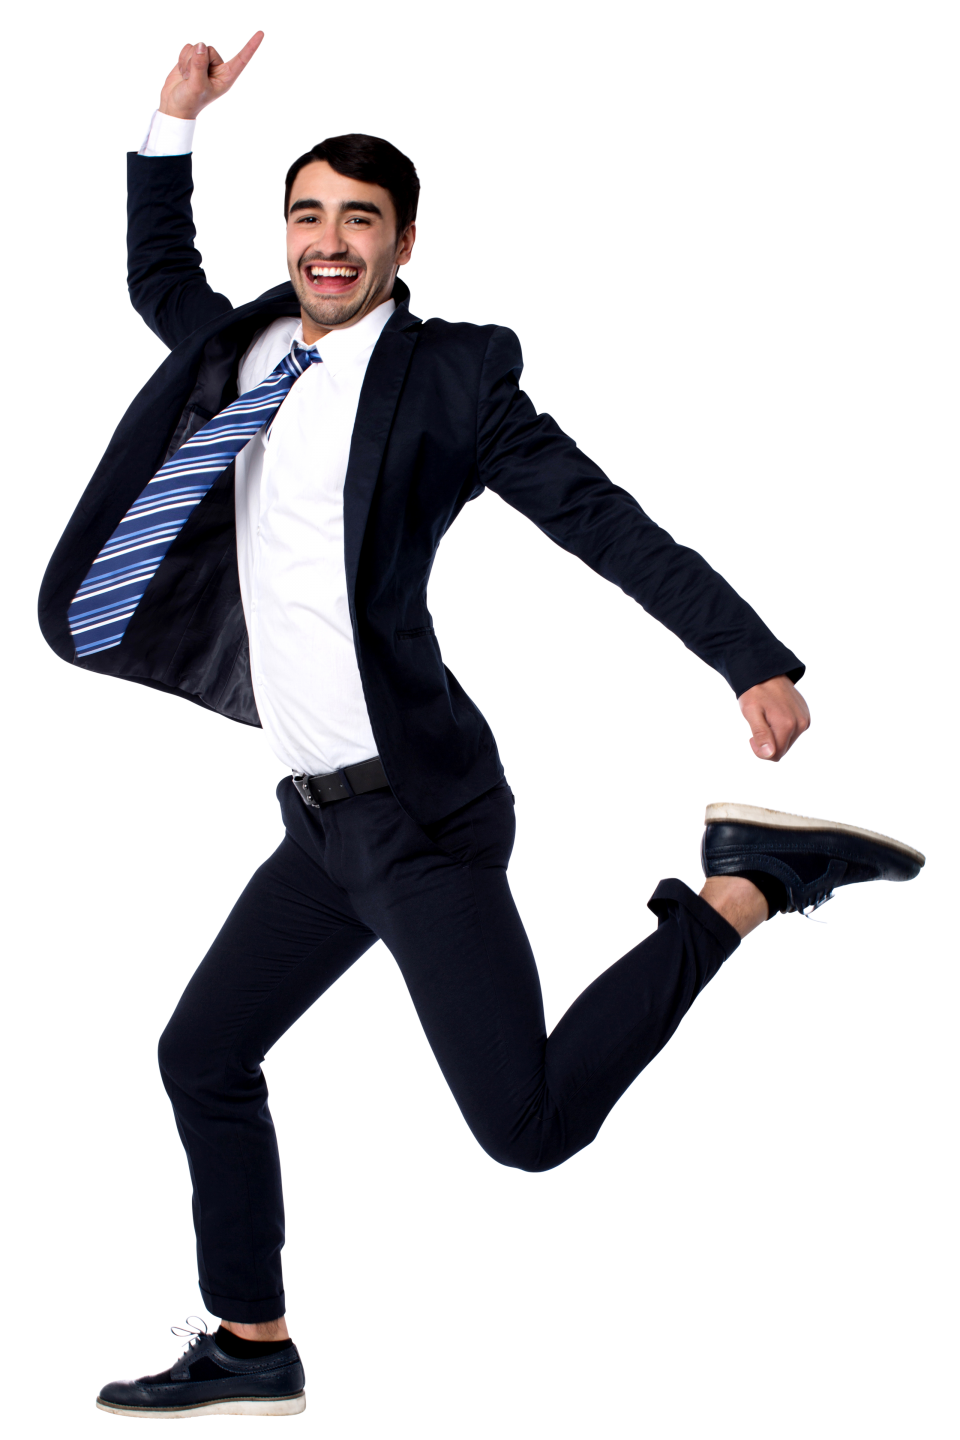 Men Pointing Up PNG Image